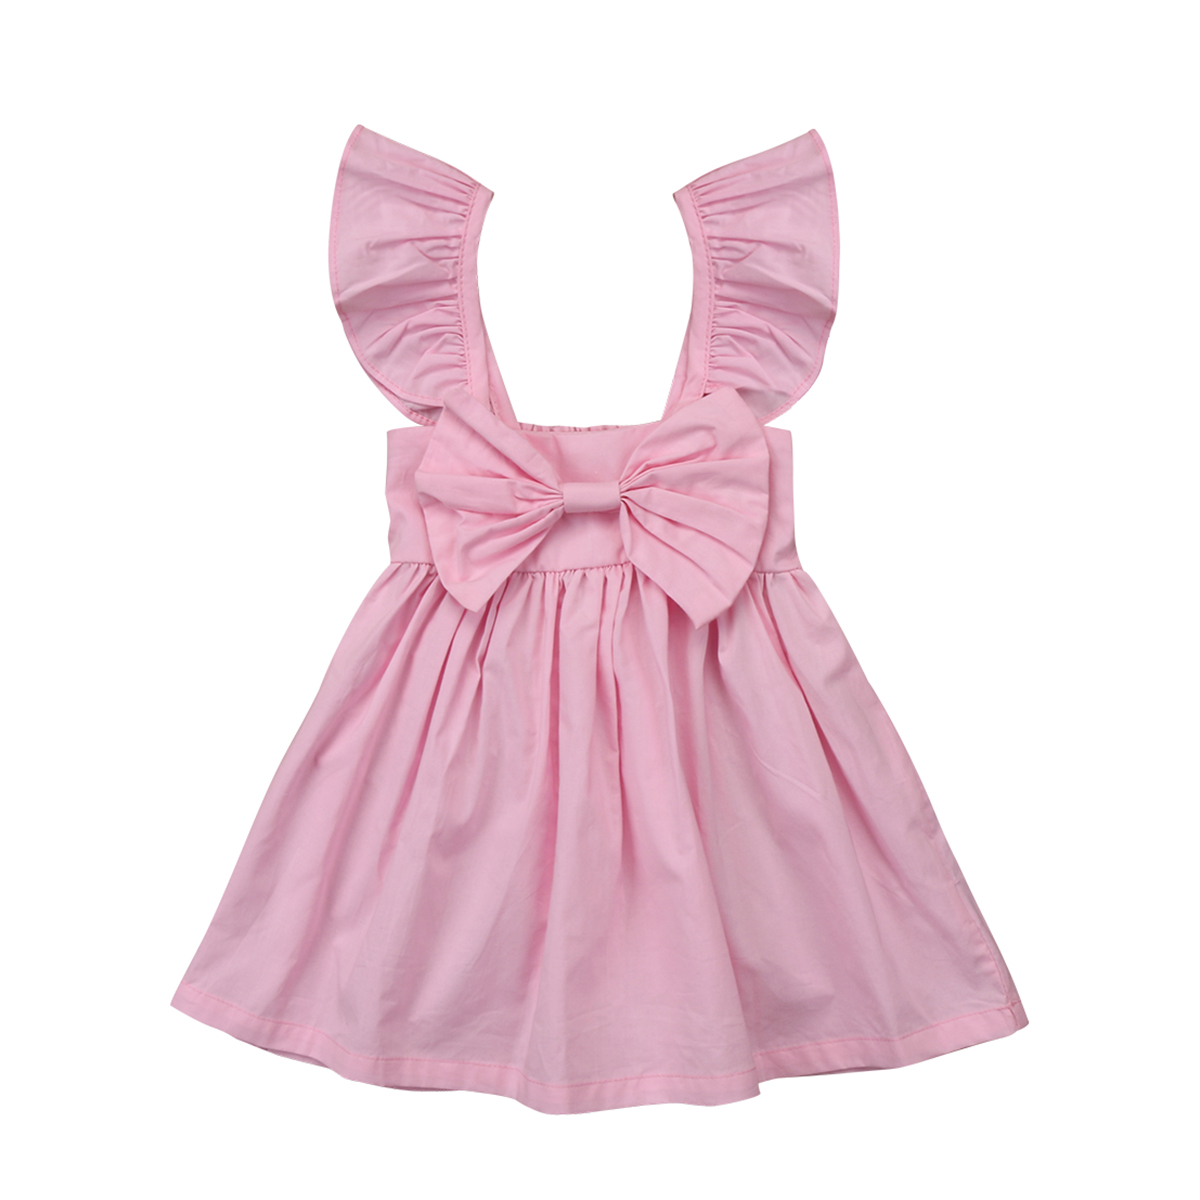 Details about  /Kids Baby Girls Summer Ruffles Ruched Solid Sleeveless Holiday Princess Dress